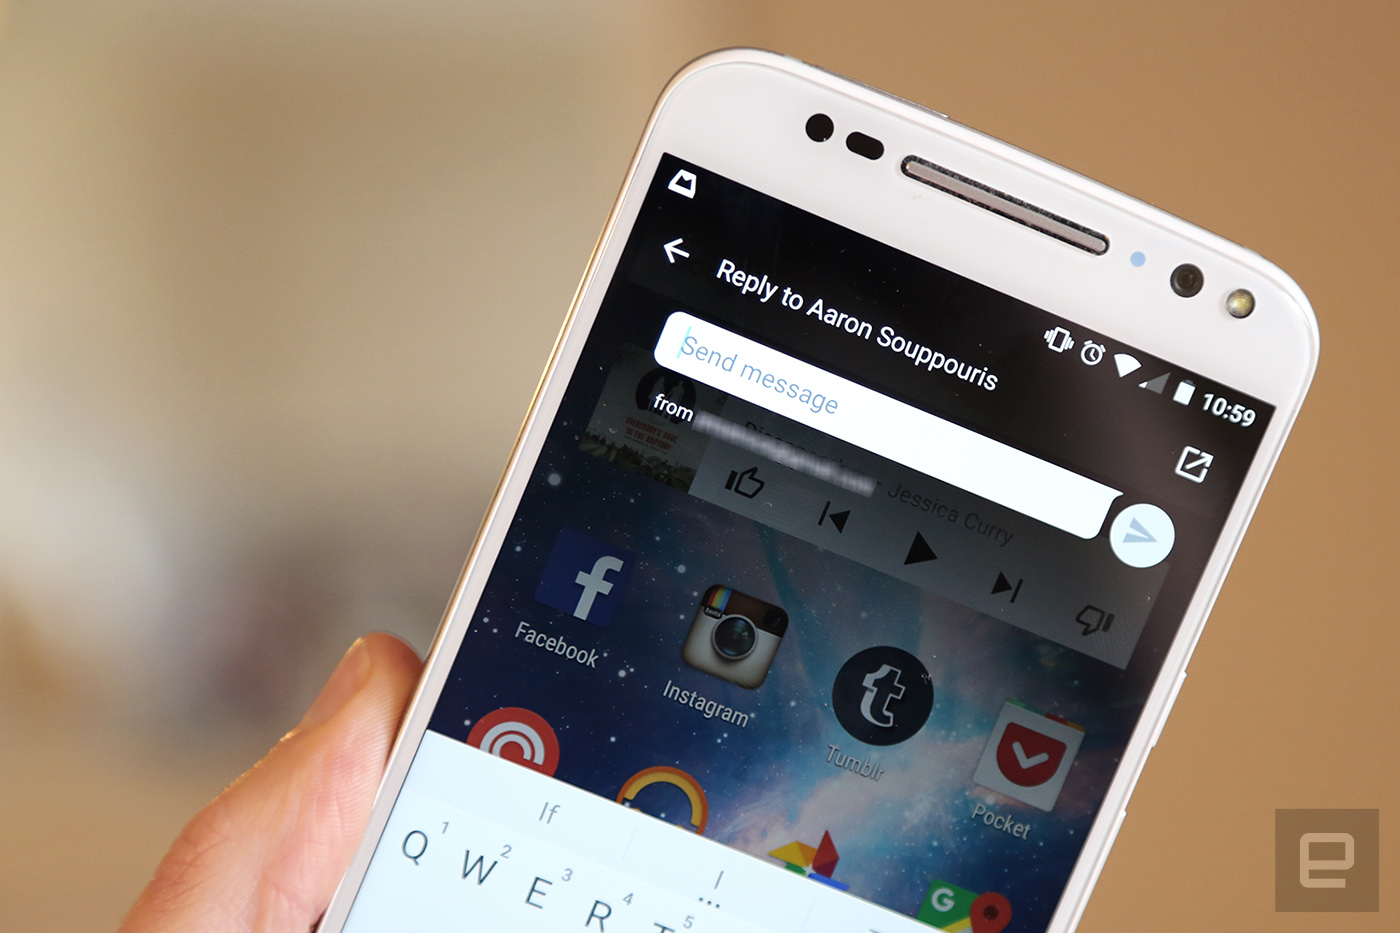 Google Hangouts for Android update adds quick replies